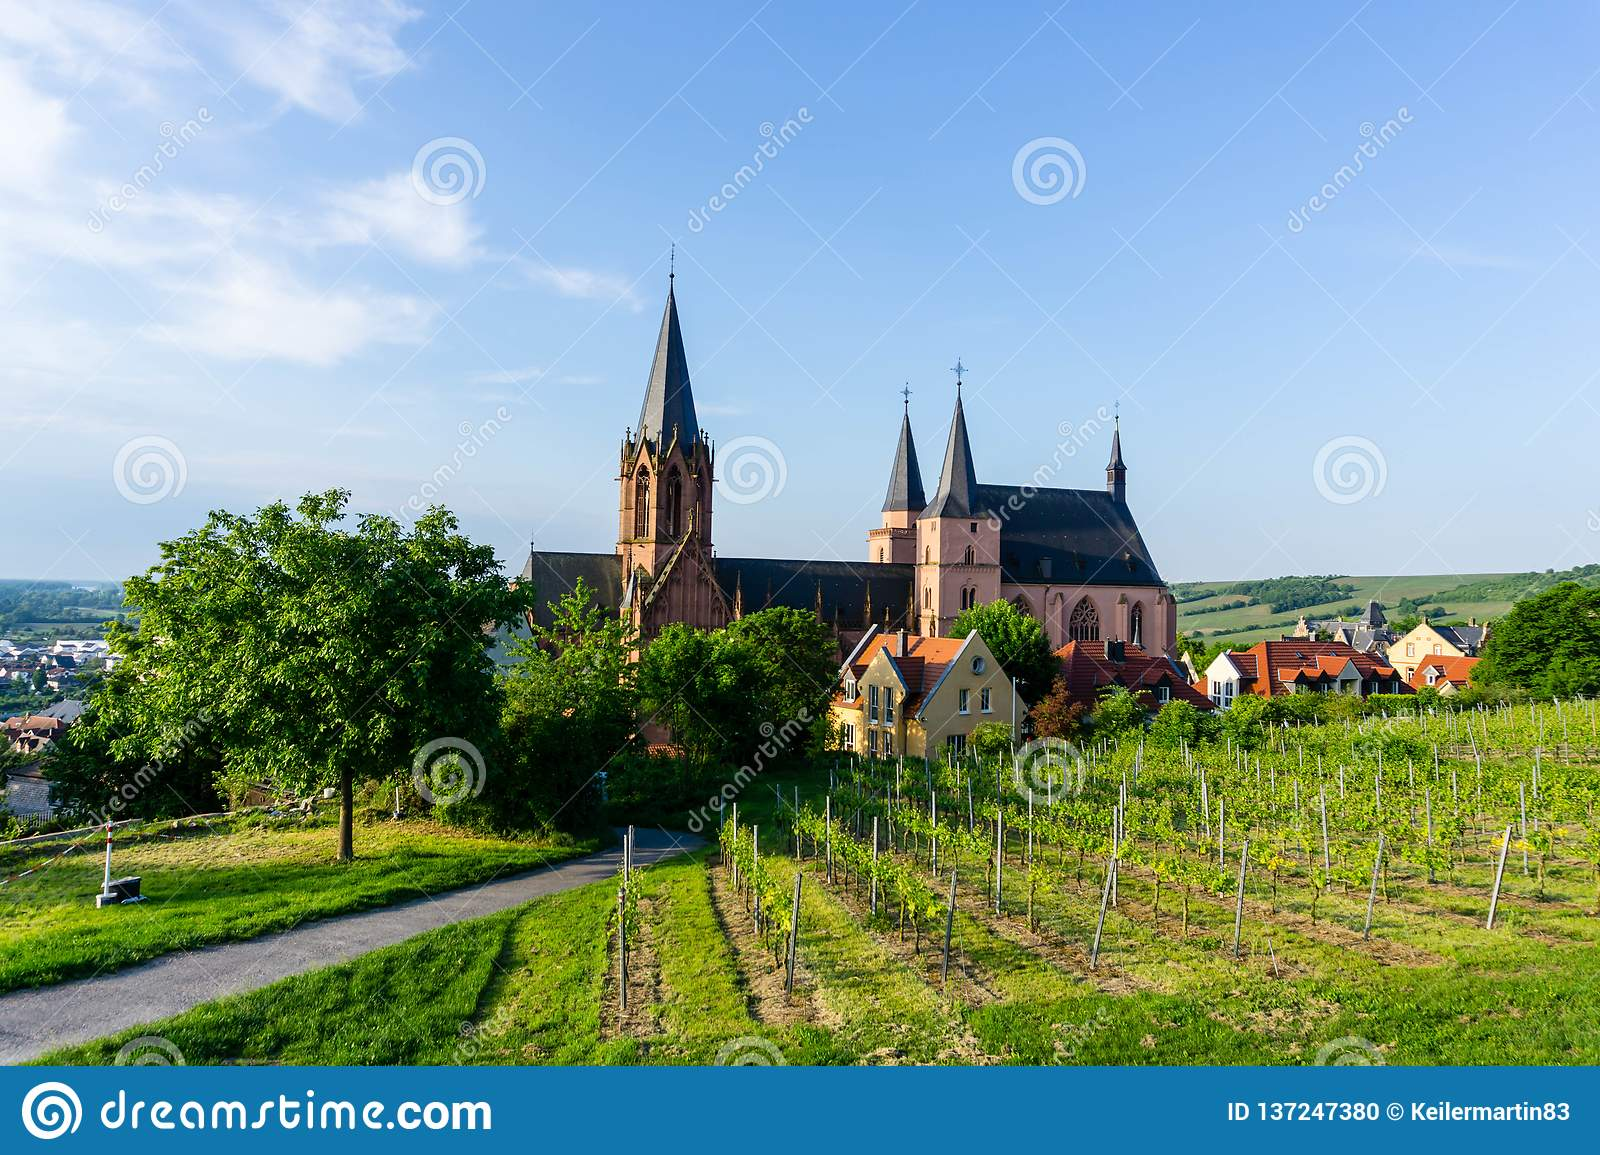 Church in the vineyards of Oppenheim, Germany